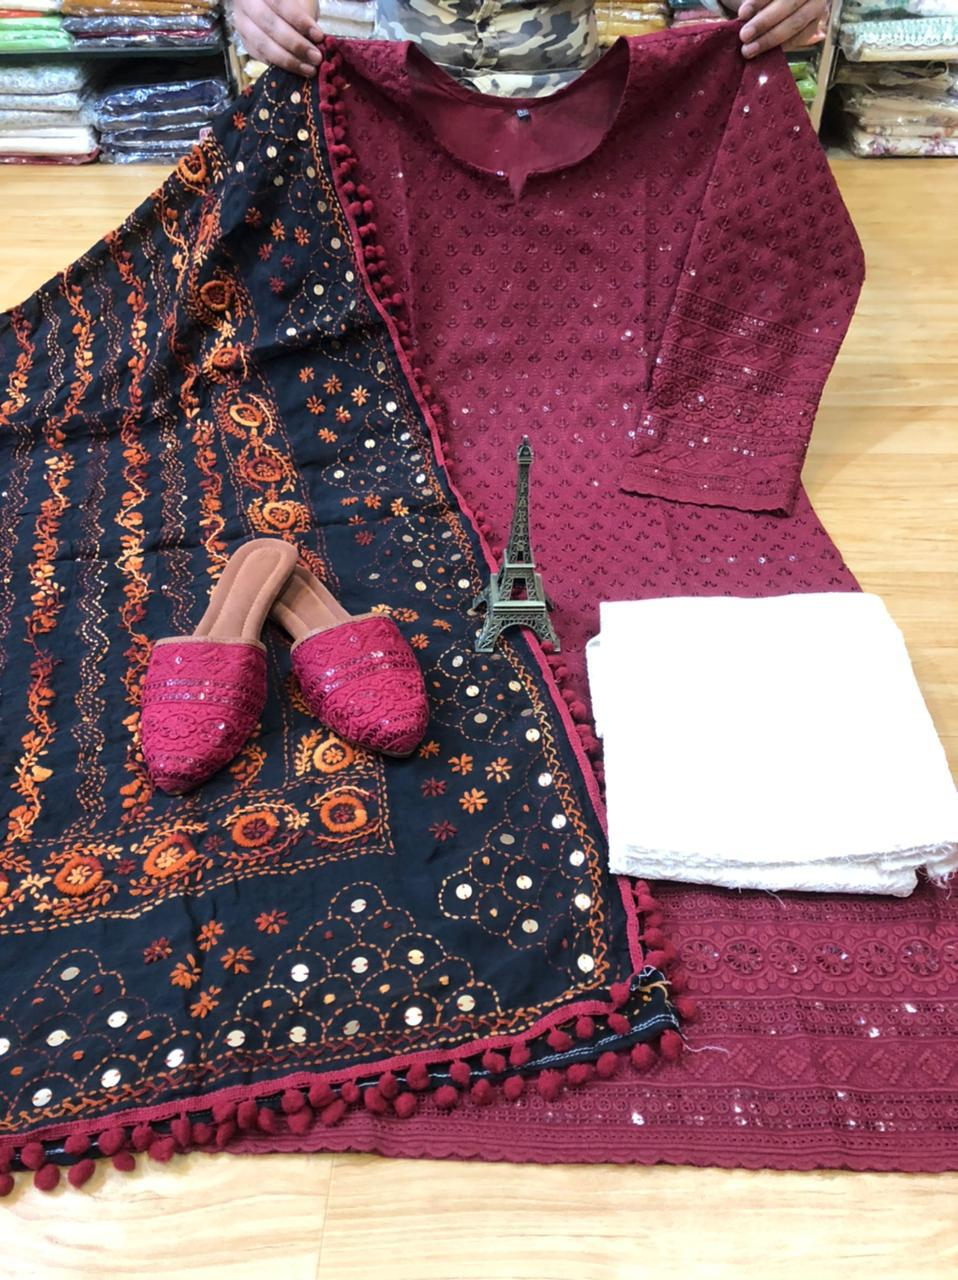 Black and Maroon Kurti Pallazo and Jutti Combo Exclusive pom Pom phulkari Pure georgette handwork embroidery dupatta